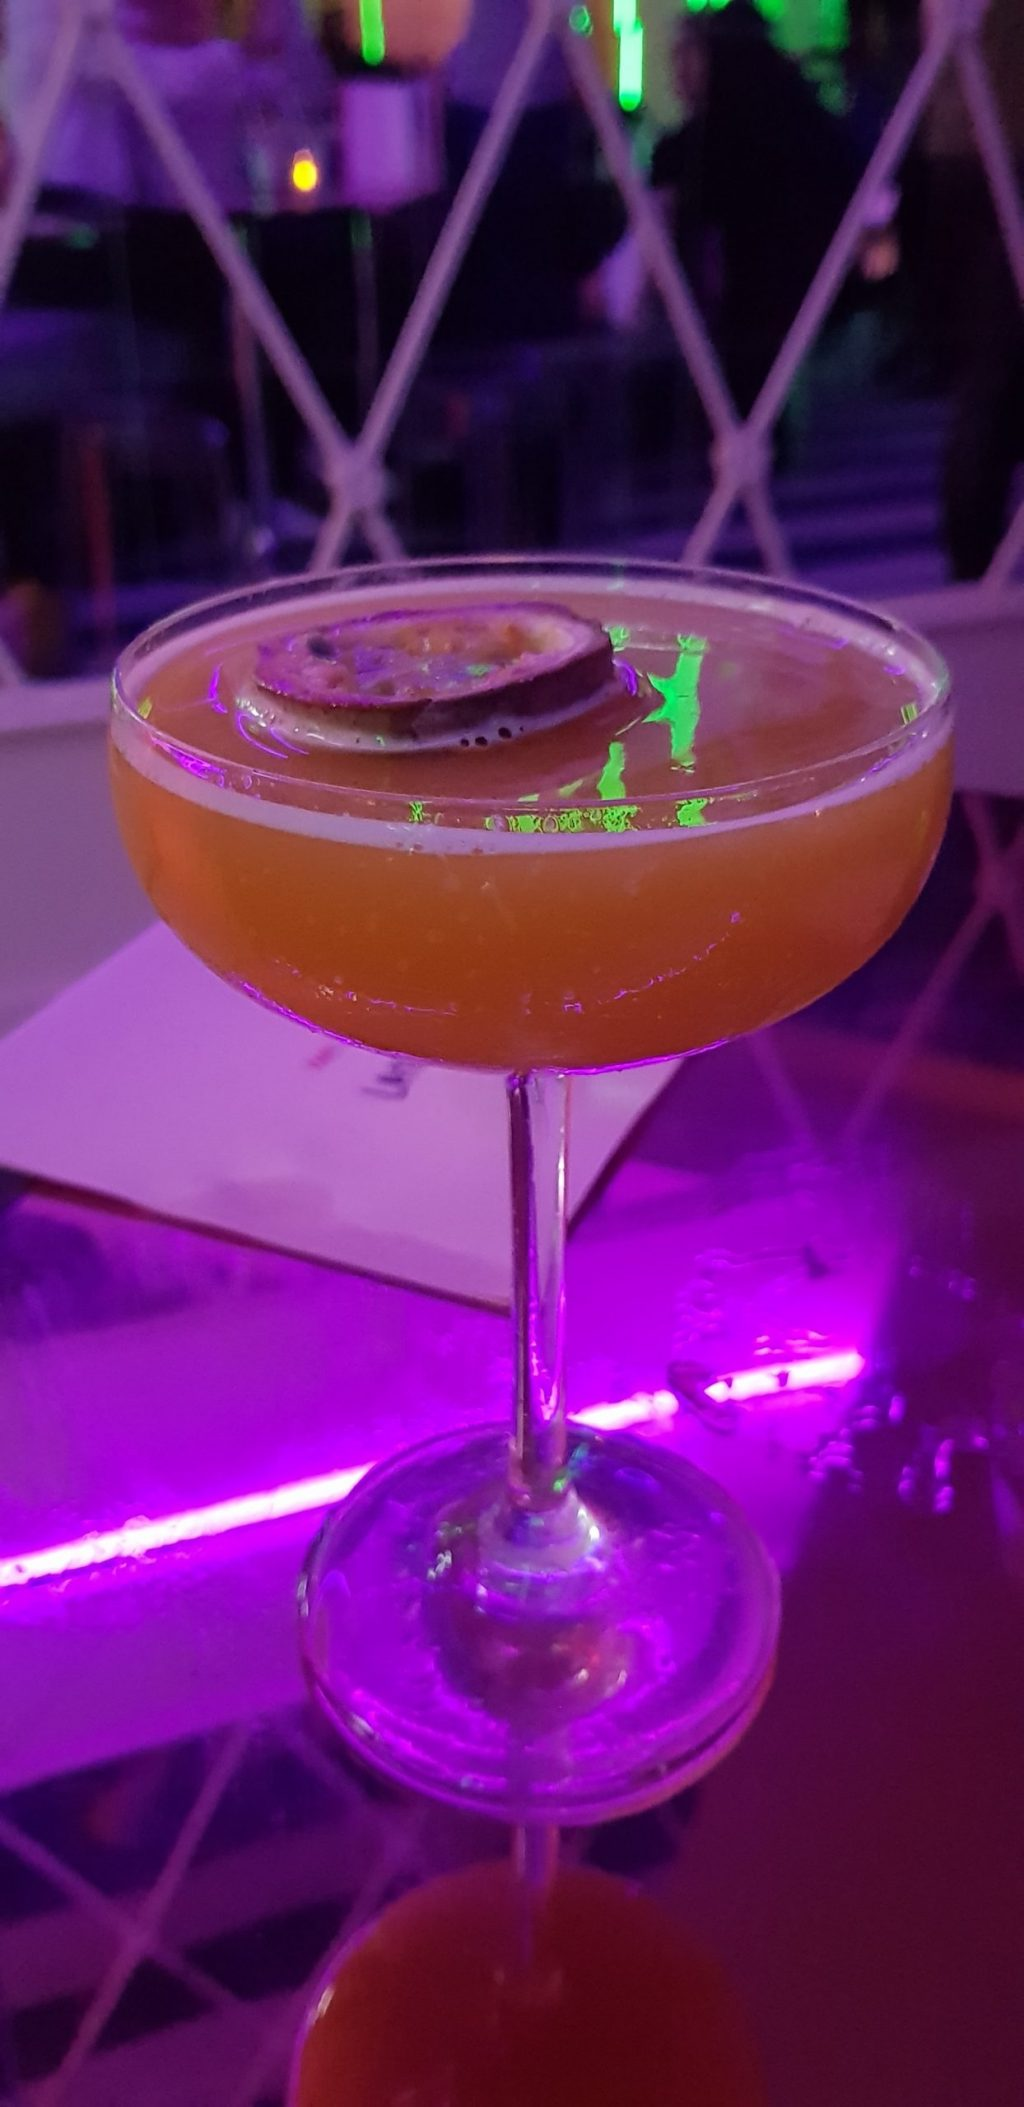 Alcohol Free Porn Star Martini at Tonight Josephine